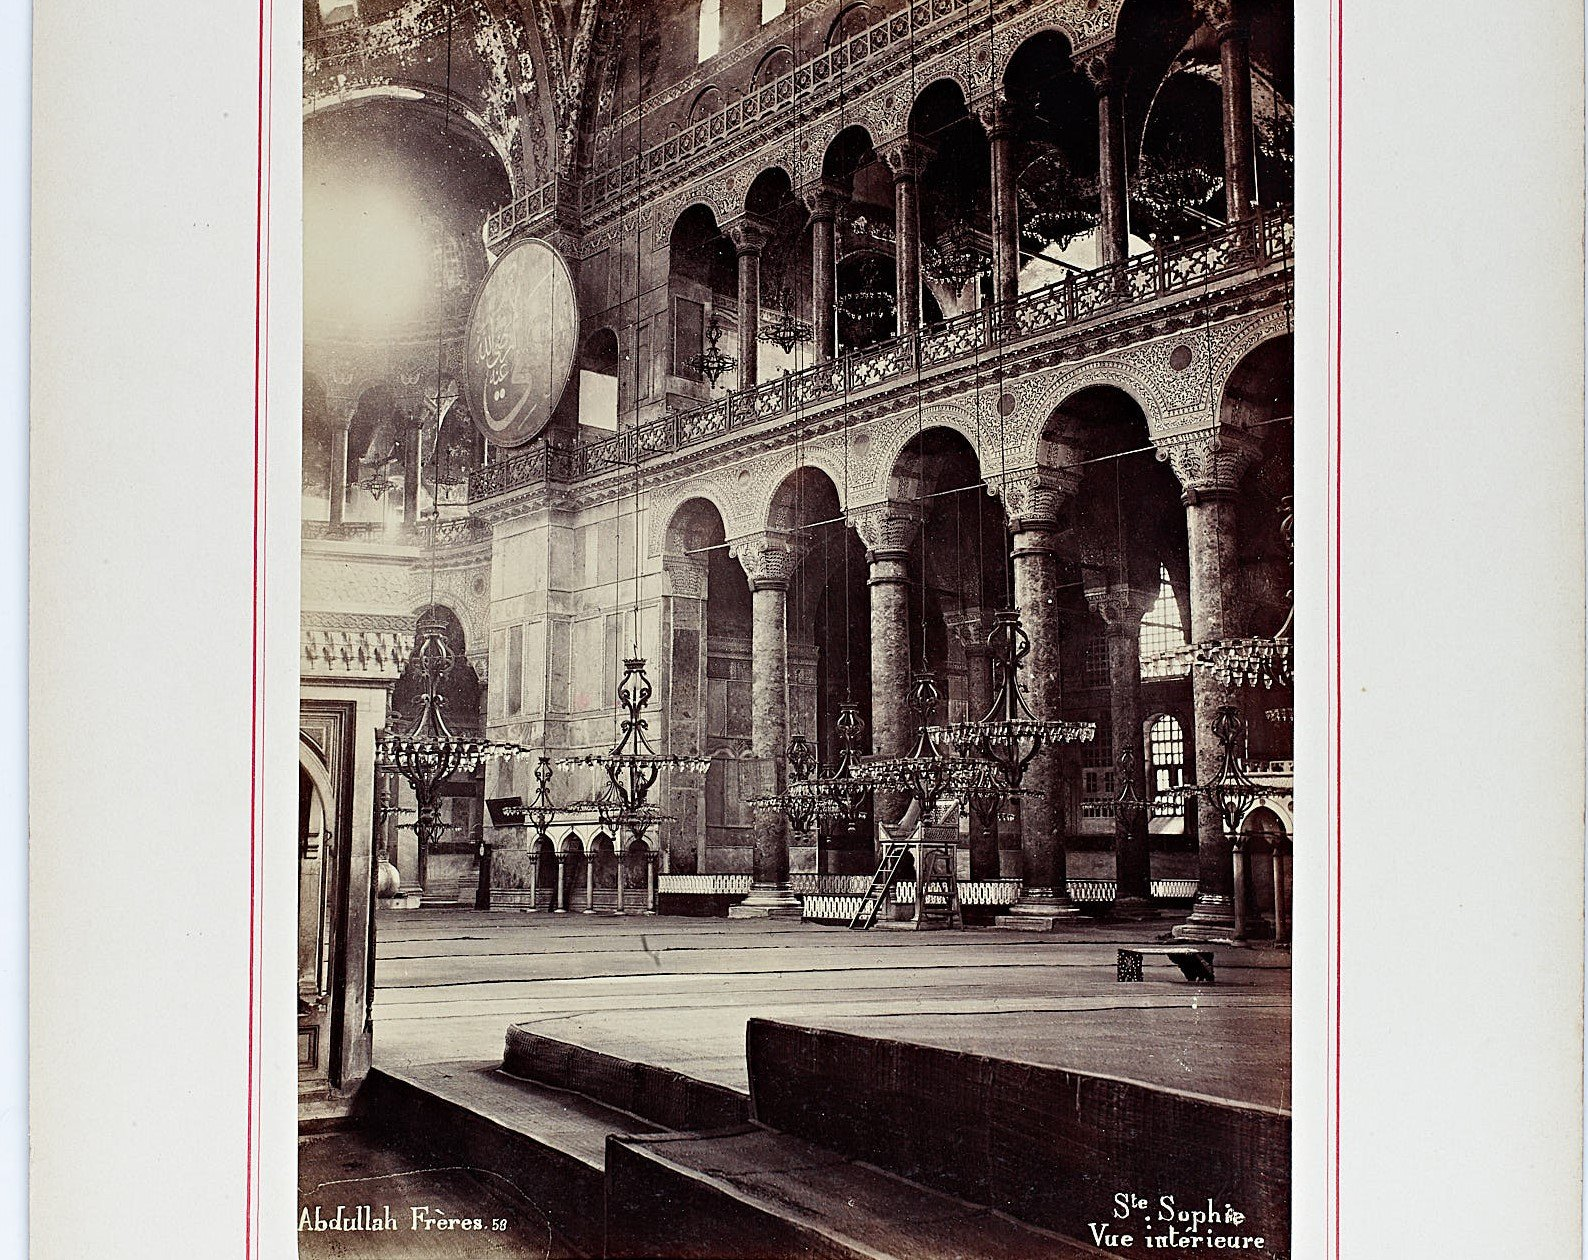 A photo of Hagia Sophia's interior by Abdullah Frerer from the collection. (Courtesy of Istanbul University)